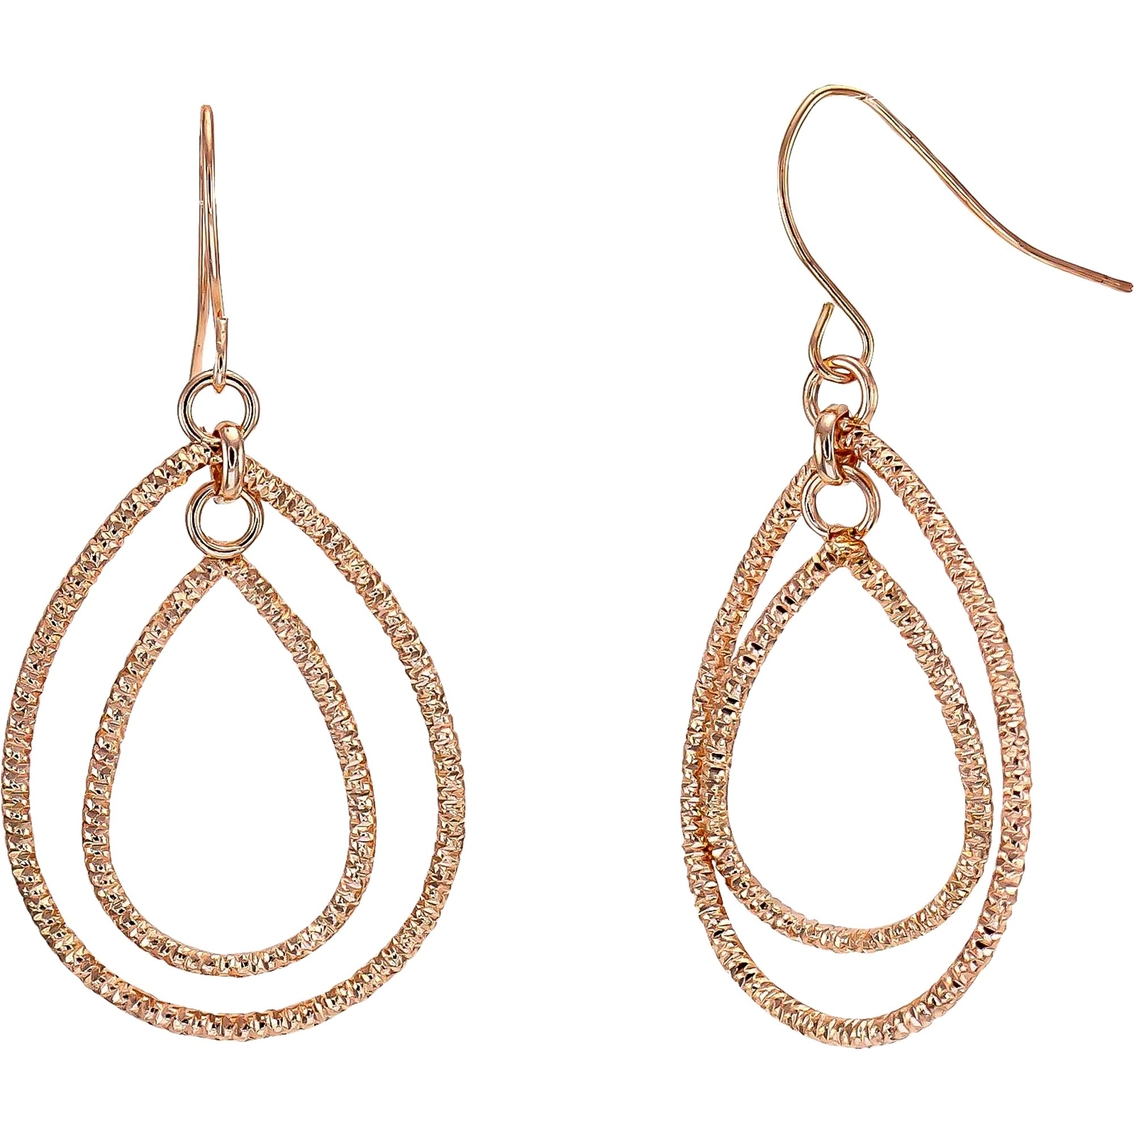 Pop Perfect Ring Diamontrigue Jewelry: Carol Dauplaise Rose Goldtone Double Metal Ring Earring